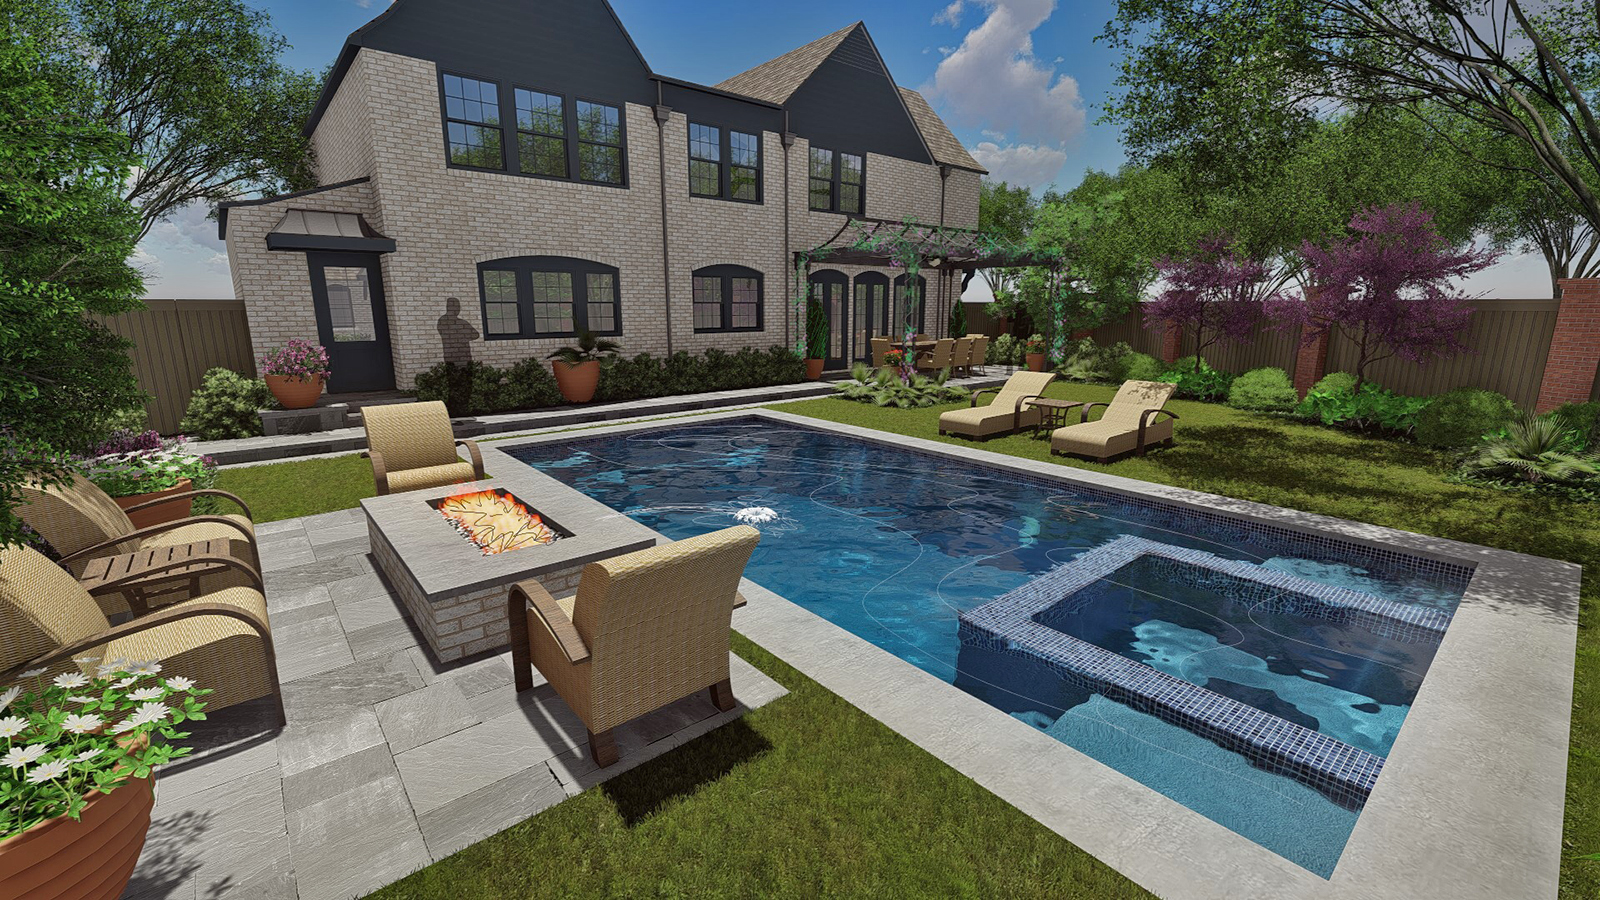 Copy of NEW POOL VIEW TO HOUSE